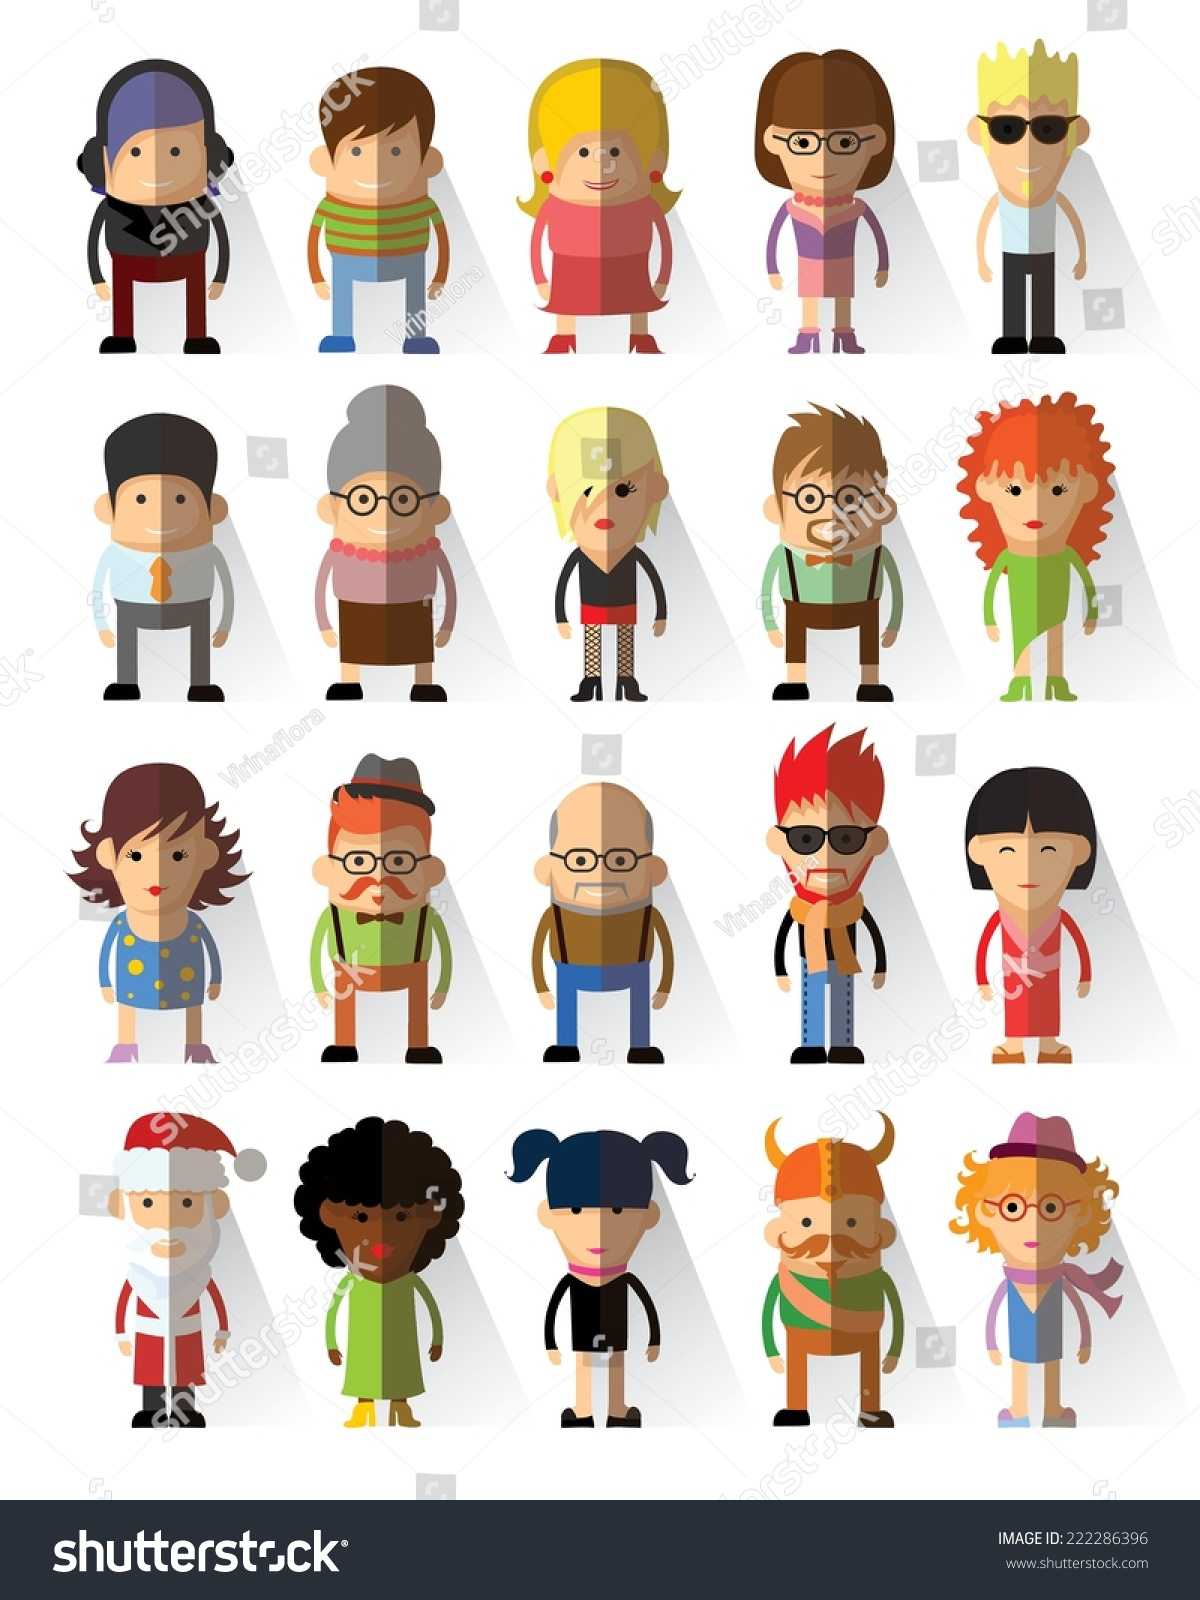 Character Design Icon : Set vector cute character avatar icons stock vektor